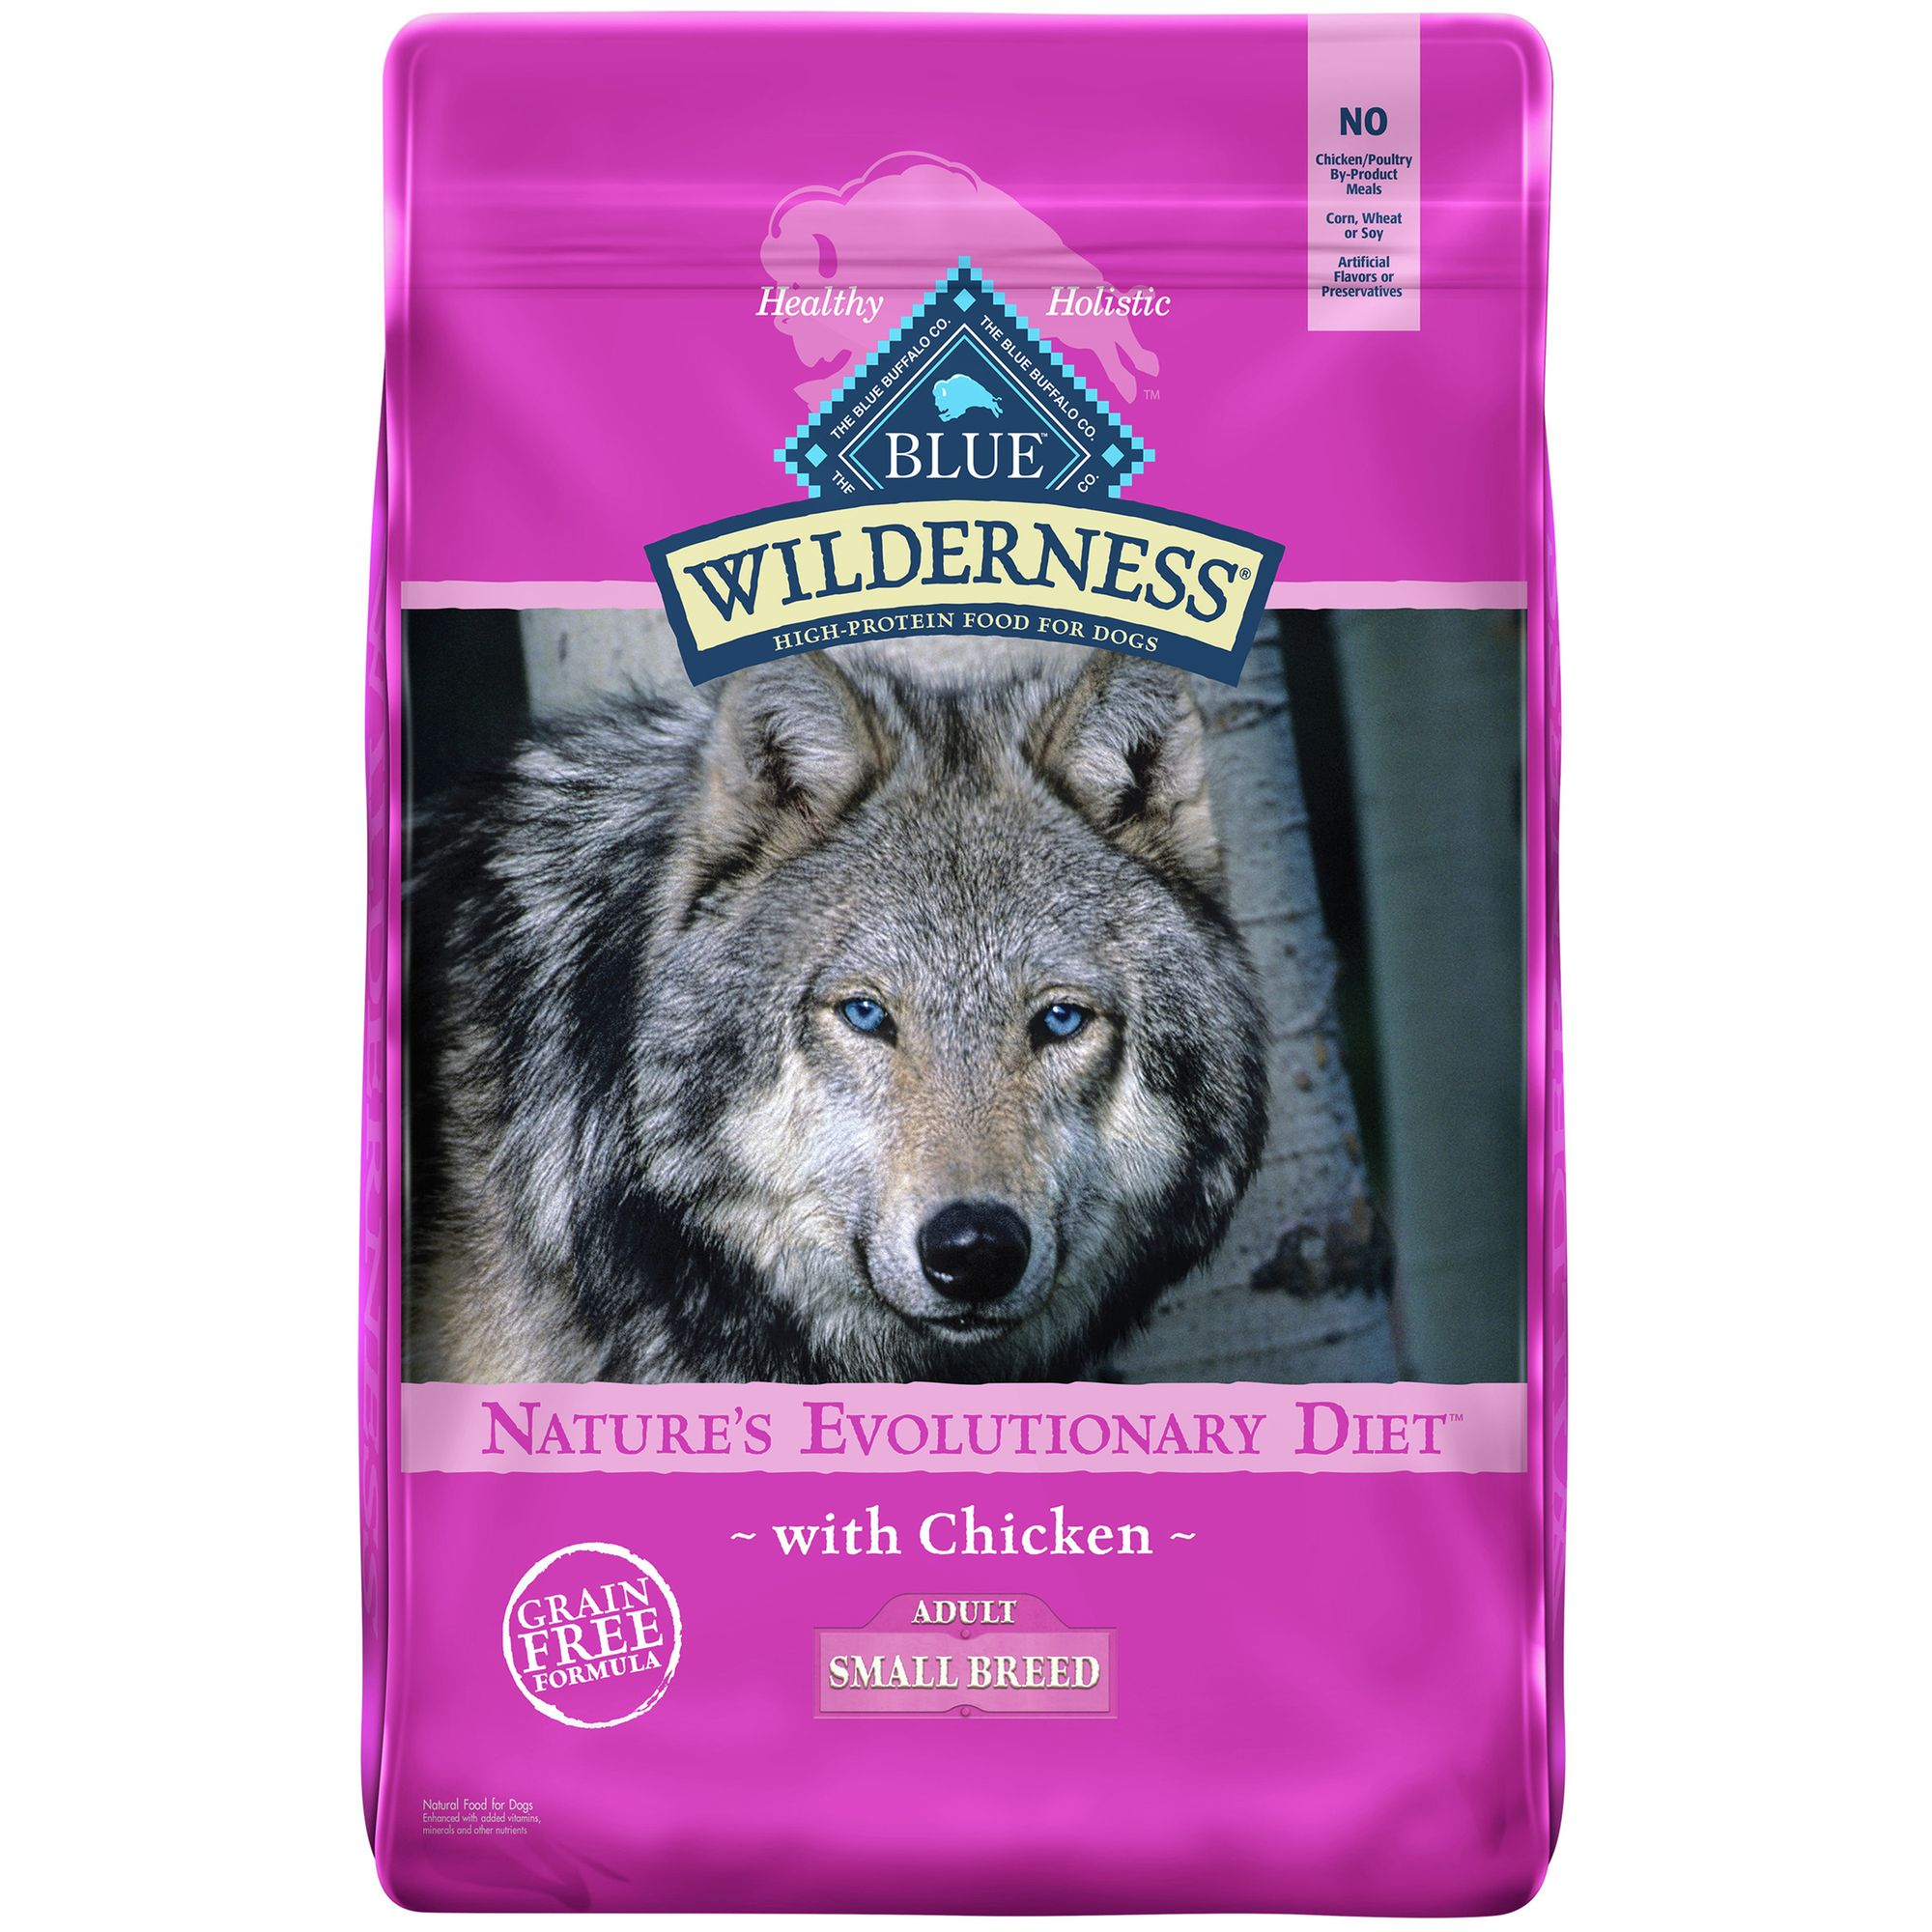 Crestfallen Wilderness Grain Free Small Breed Adult Dog Food size: 11 Lb, Blue Buffalo, Chicken